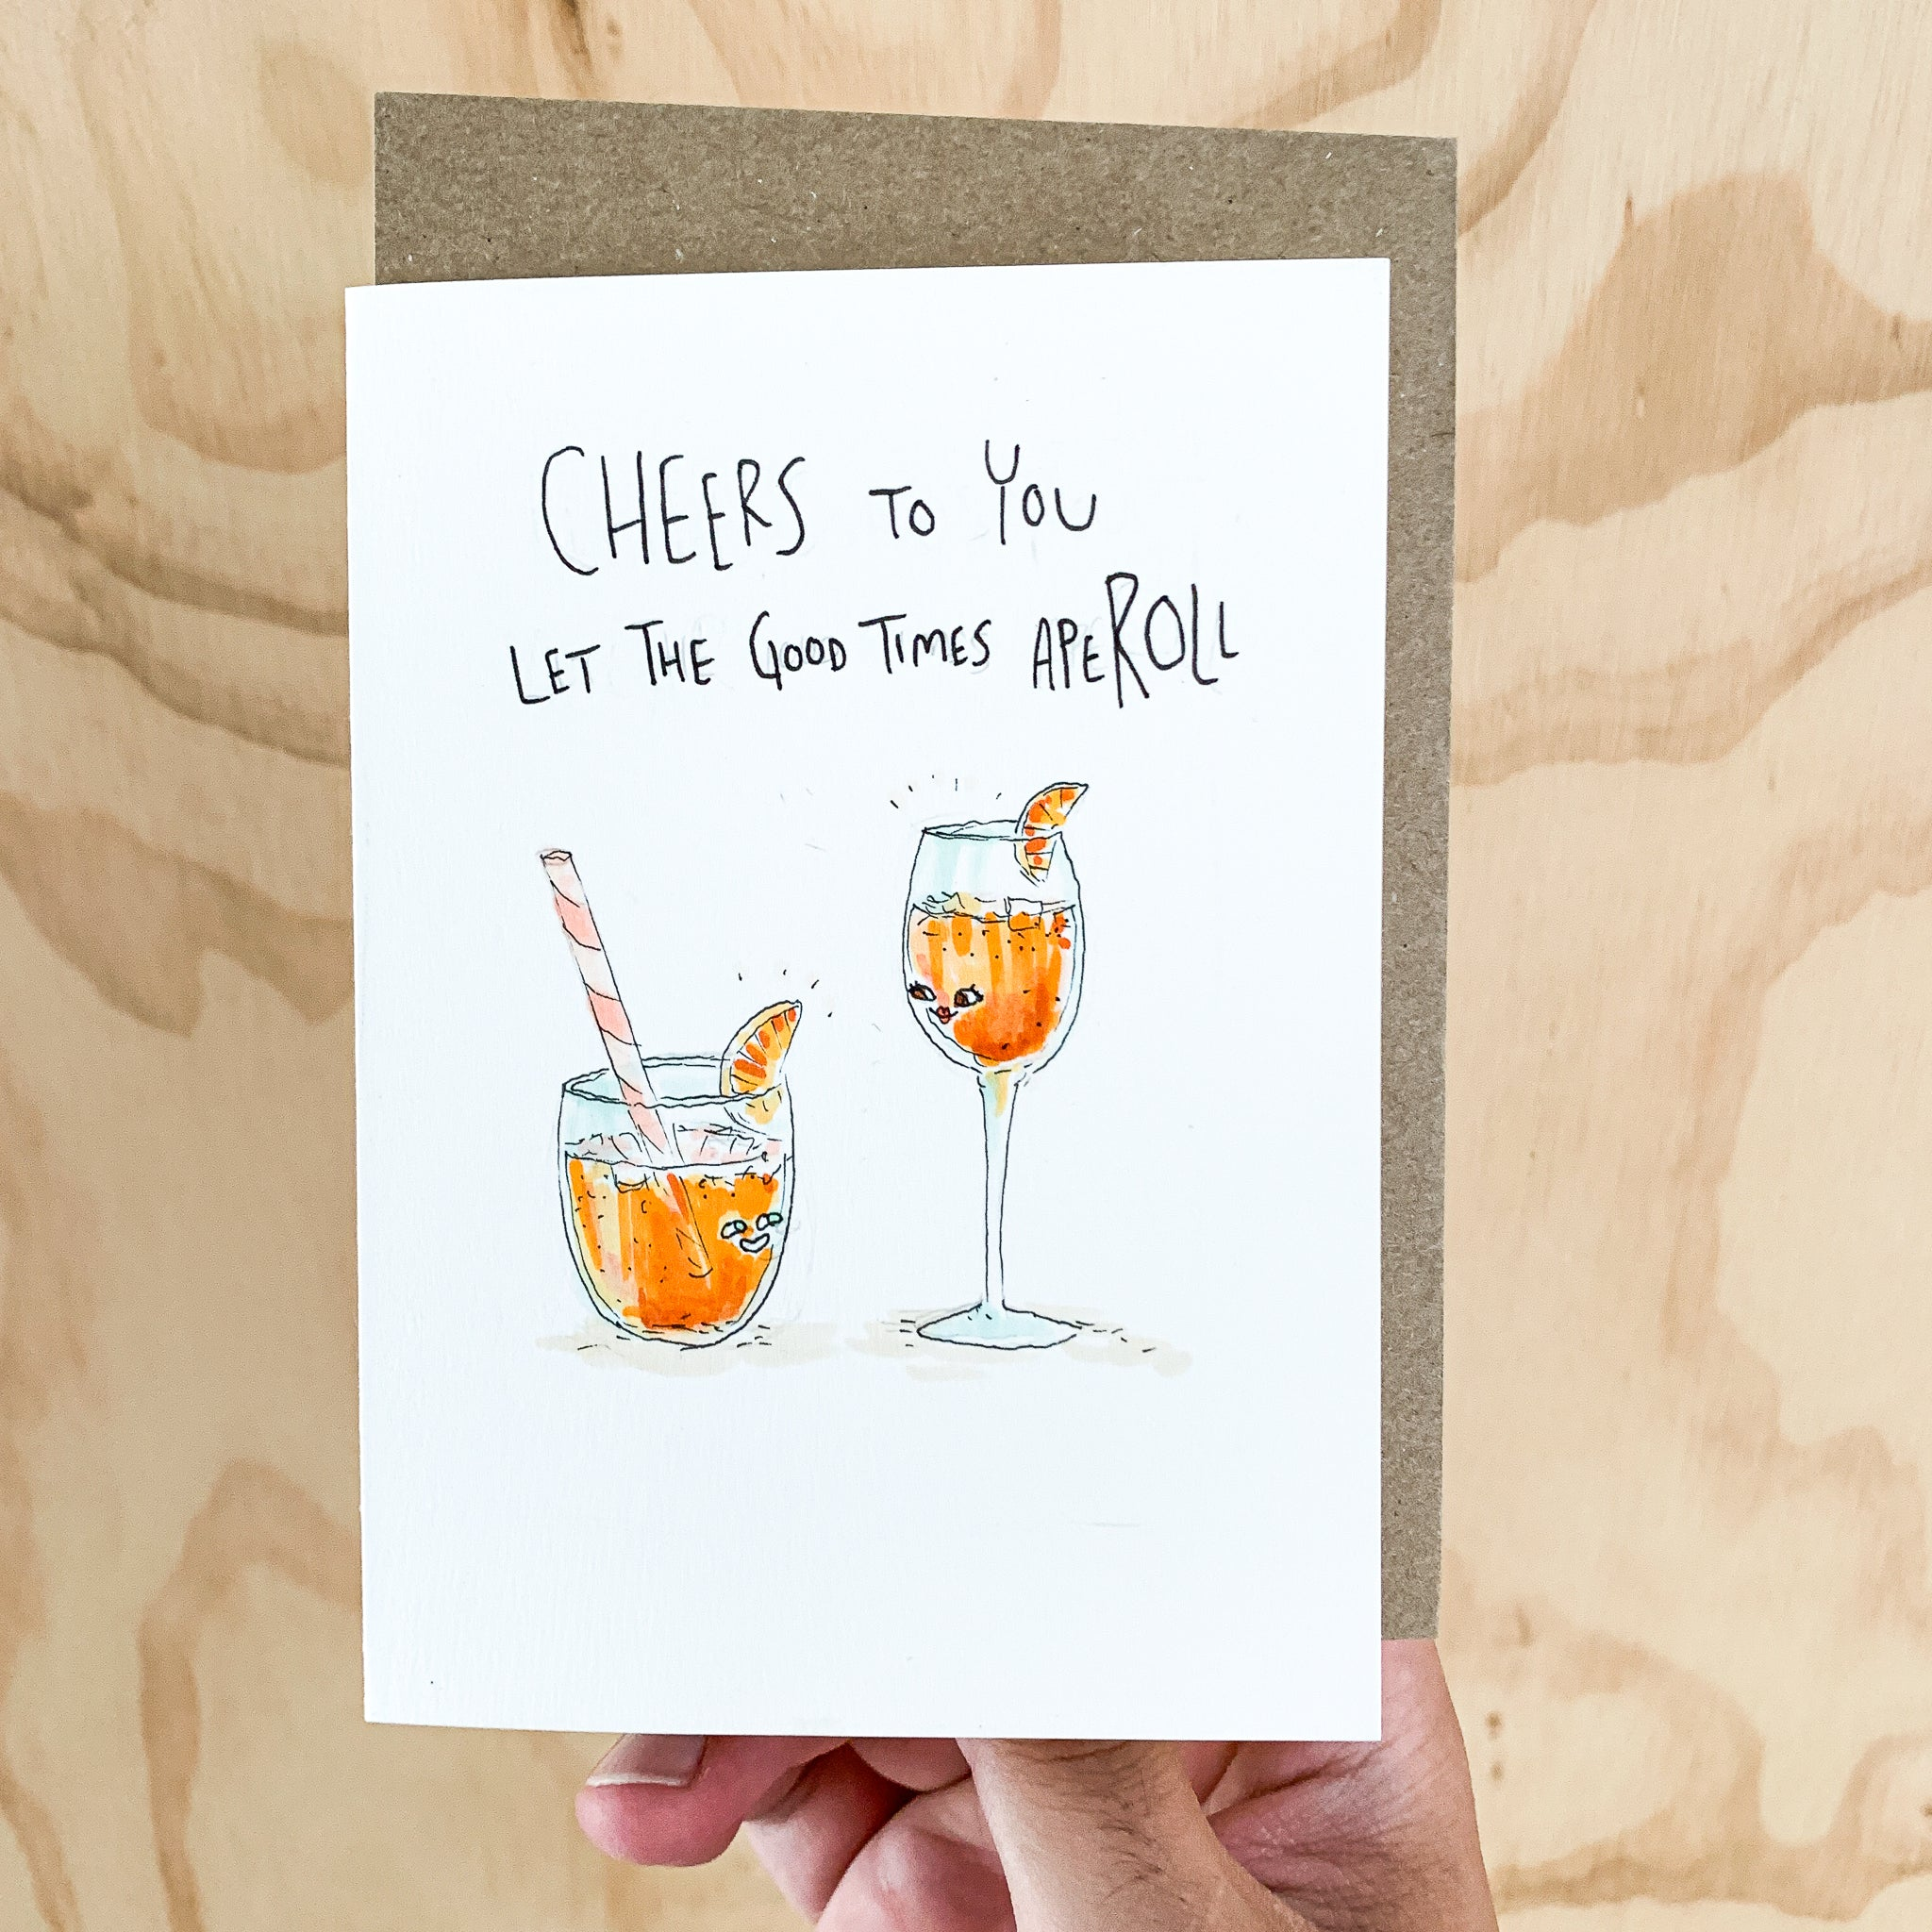 Cheers To You, Let The Good Times Aperoll - Well Drawn